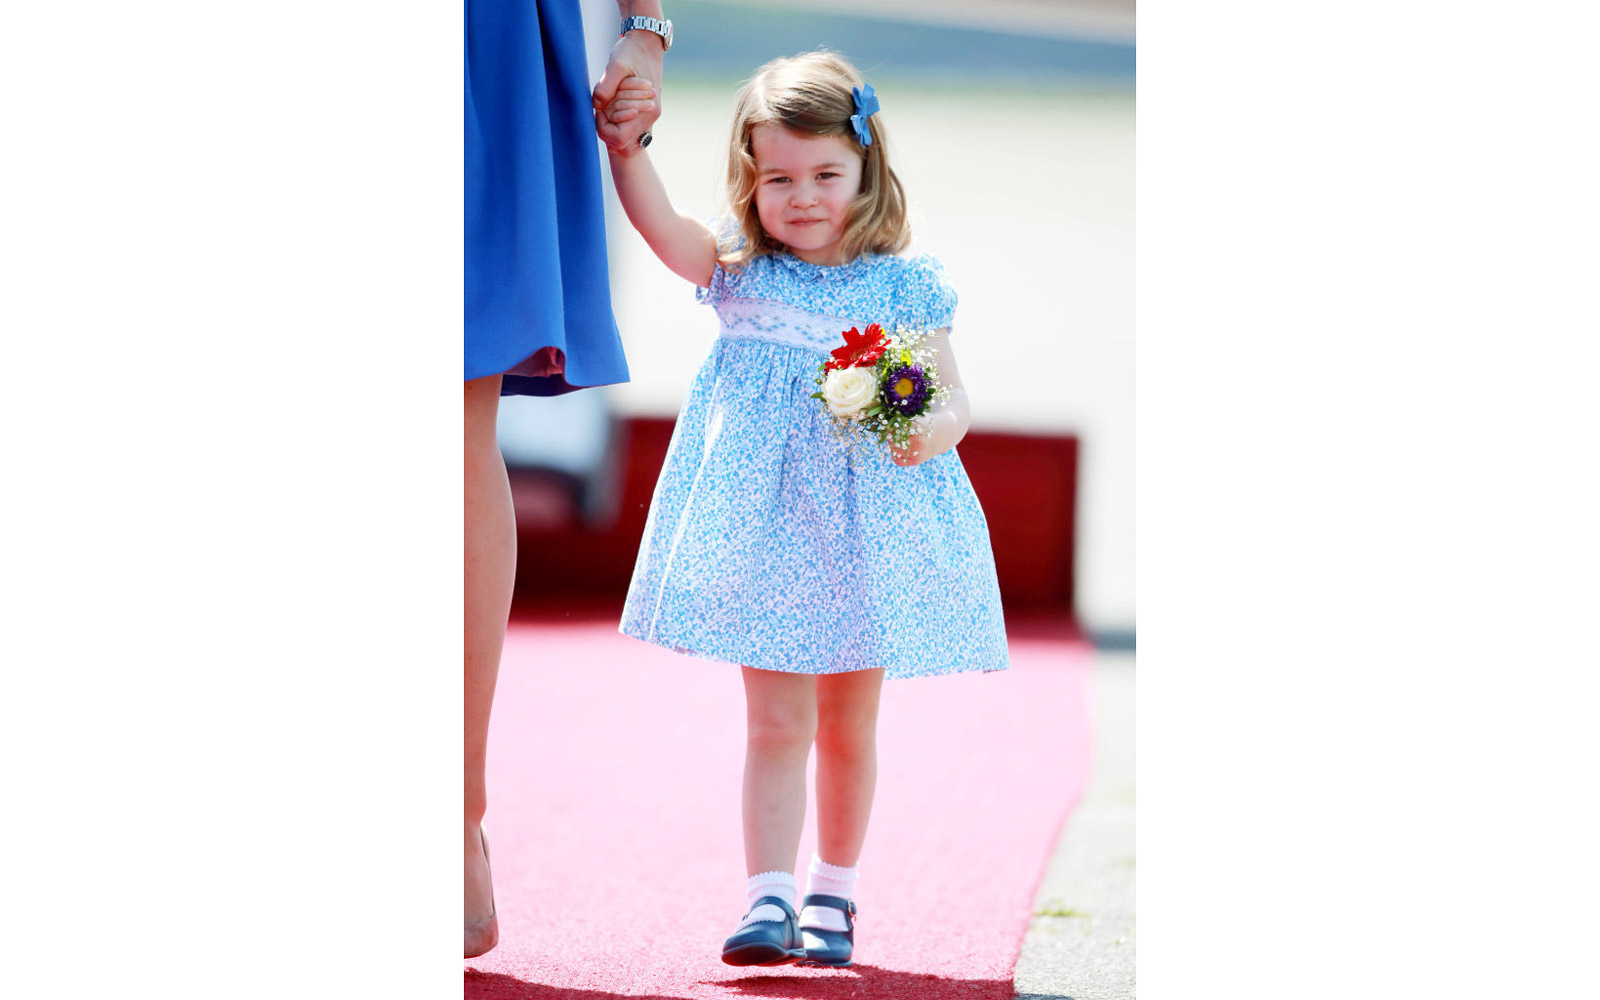 Princess Charlotte of Cambridge arrives at Berlin military airport during an official visit to Poland and Germany on July 19, 2017 in Berlin, Germany.